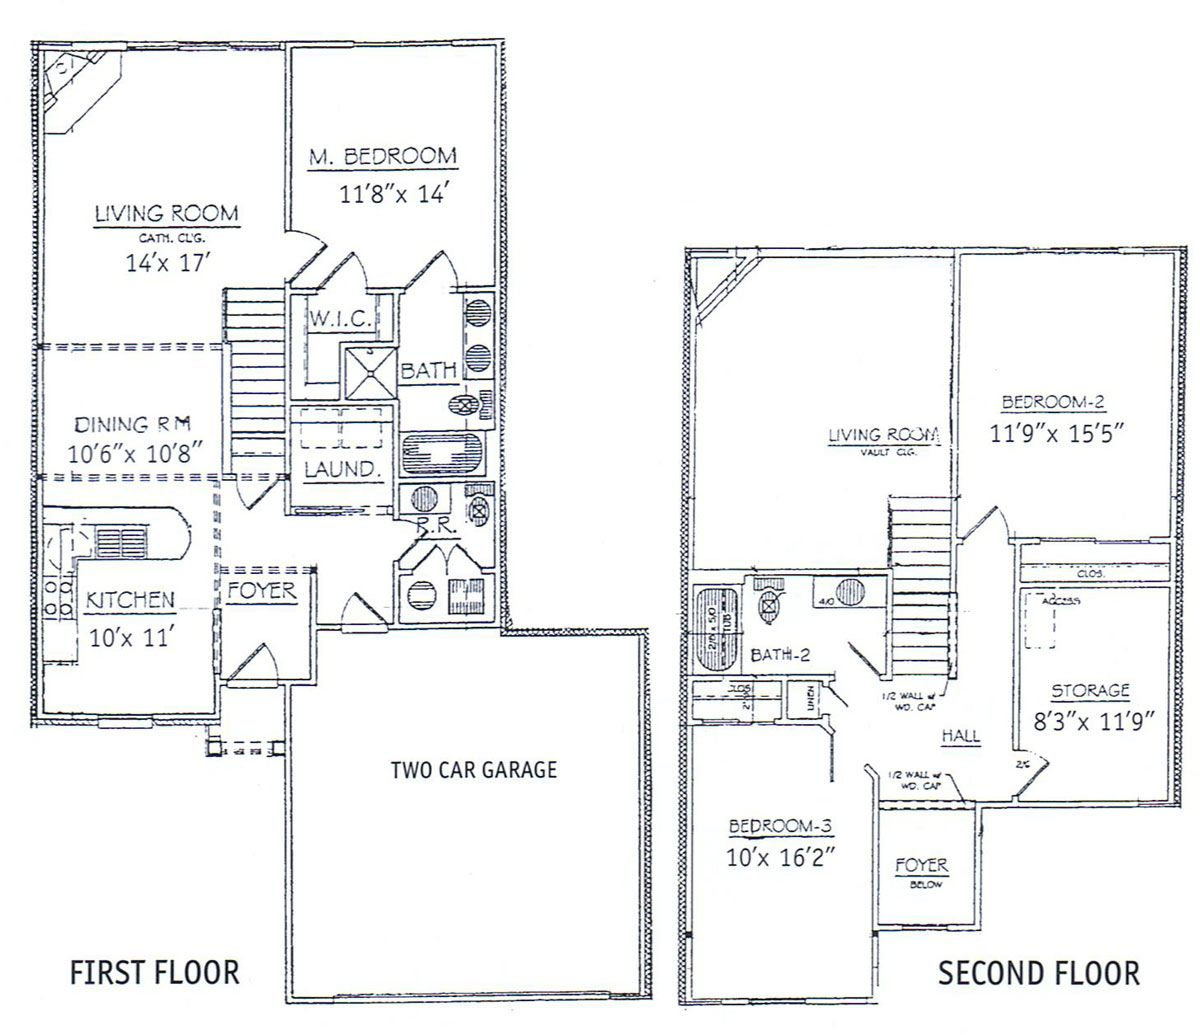 3 Bedrooms Floor Plans 2 Story Bdrm Basement The Two: two bedroom townhouse plans